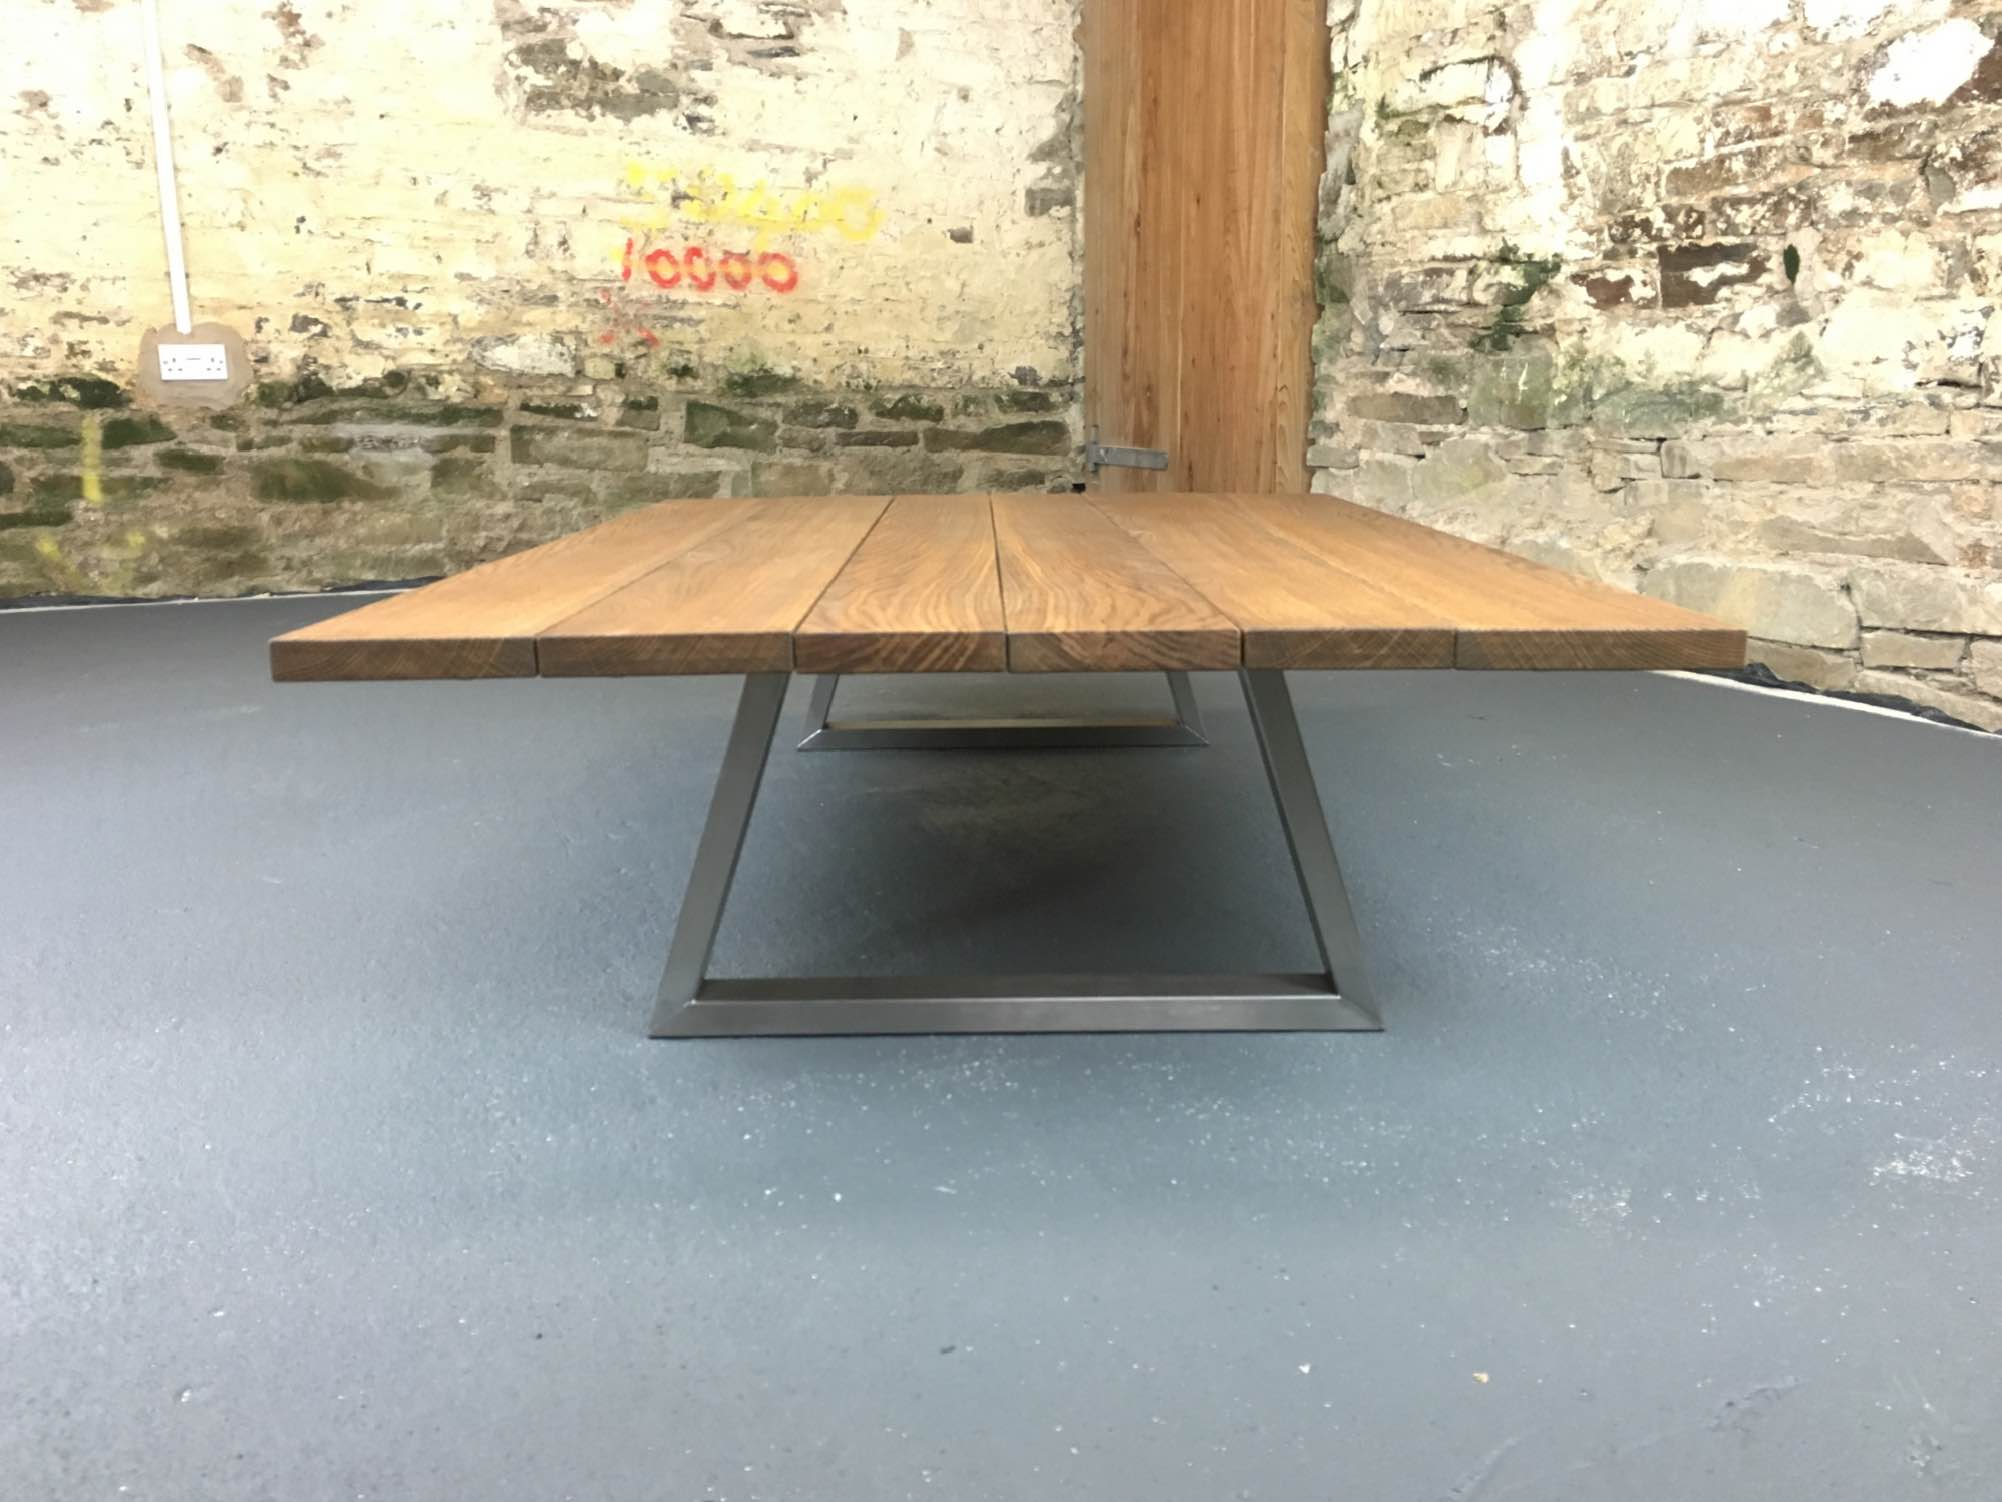 This Piranha has 30mm thick oak top with square edges